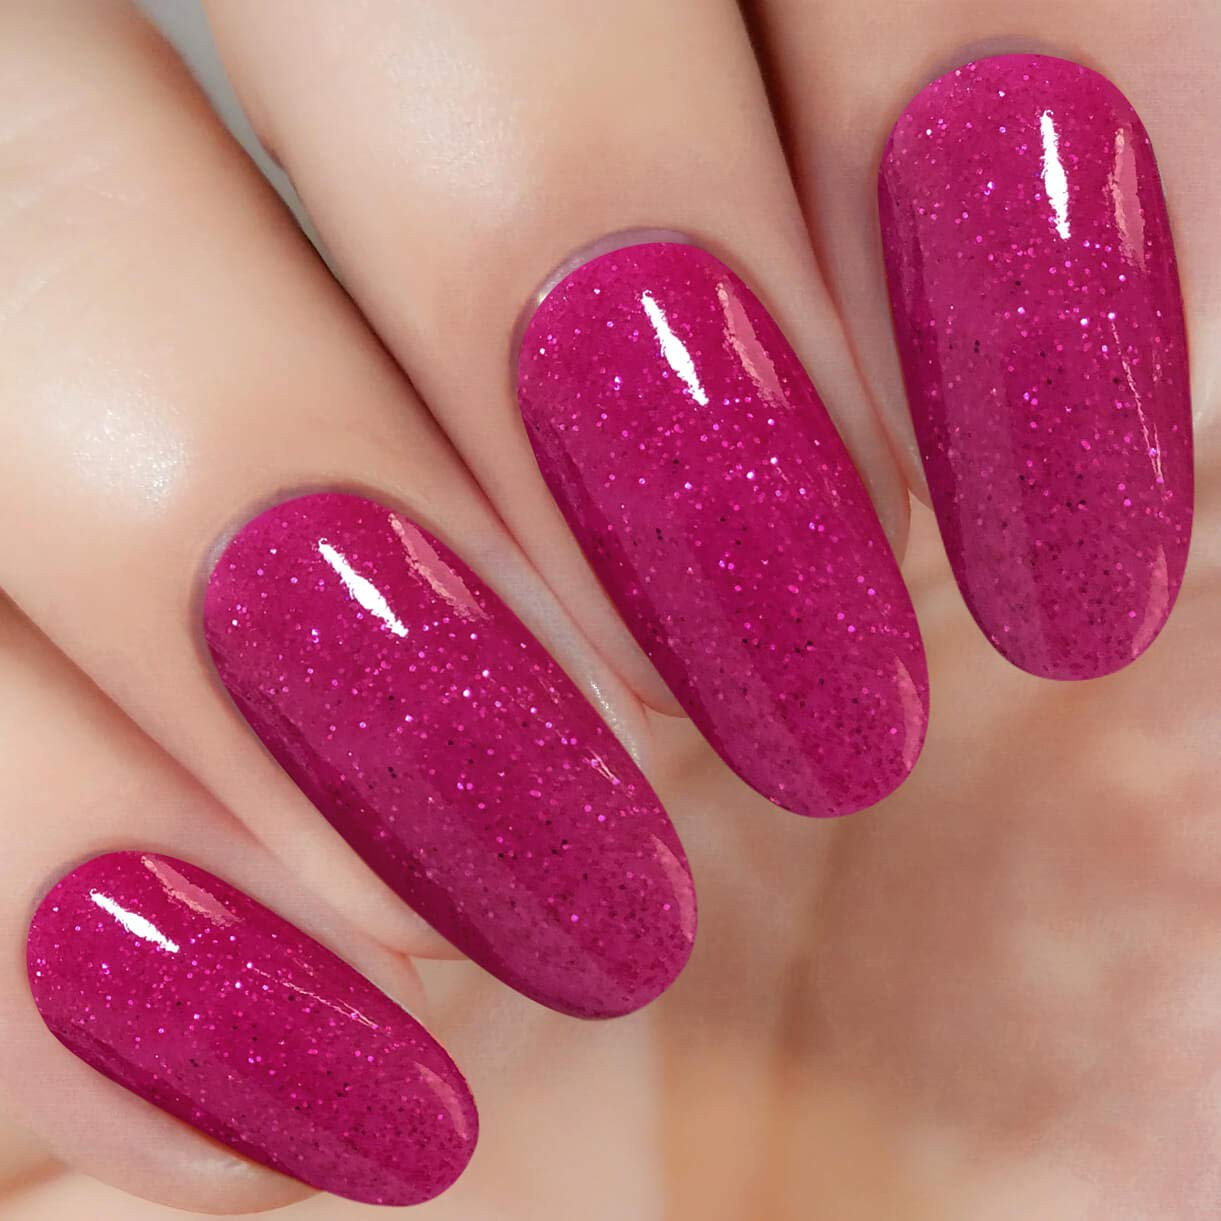 Red Sparkle Nail Dipping Powder (Added Vitamin) I.B.N Dipped Acrylic Dip Powder DIY Manicure Salon Home Use, 1 Ounce (DIP 045)